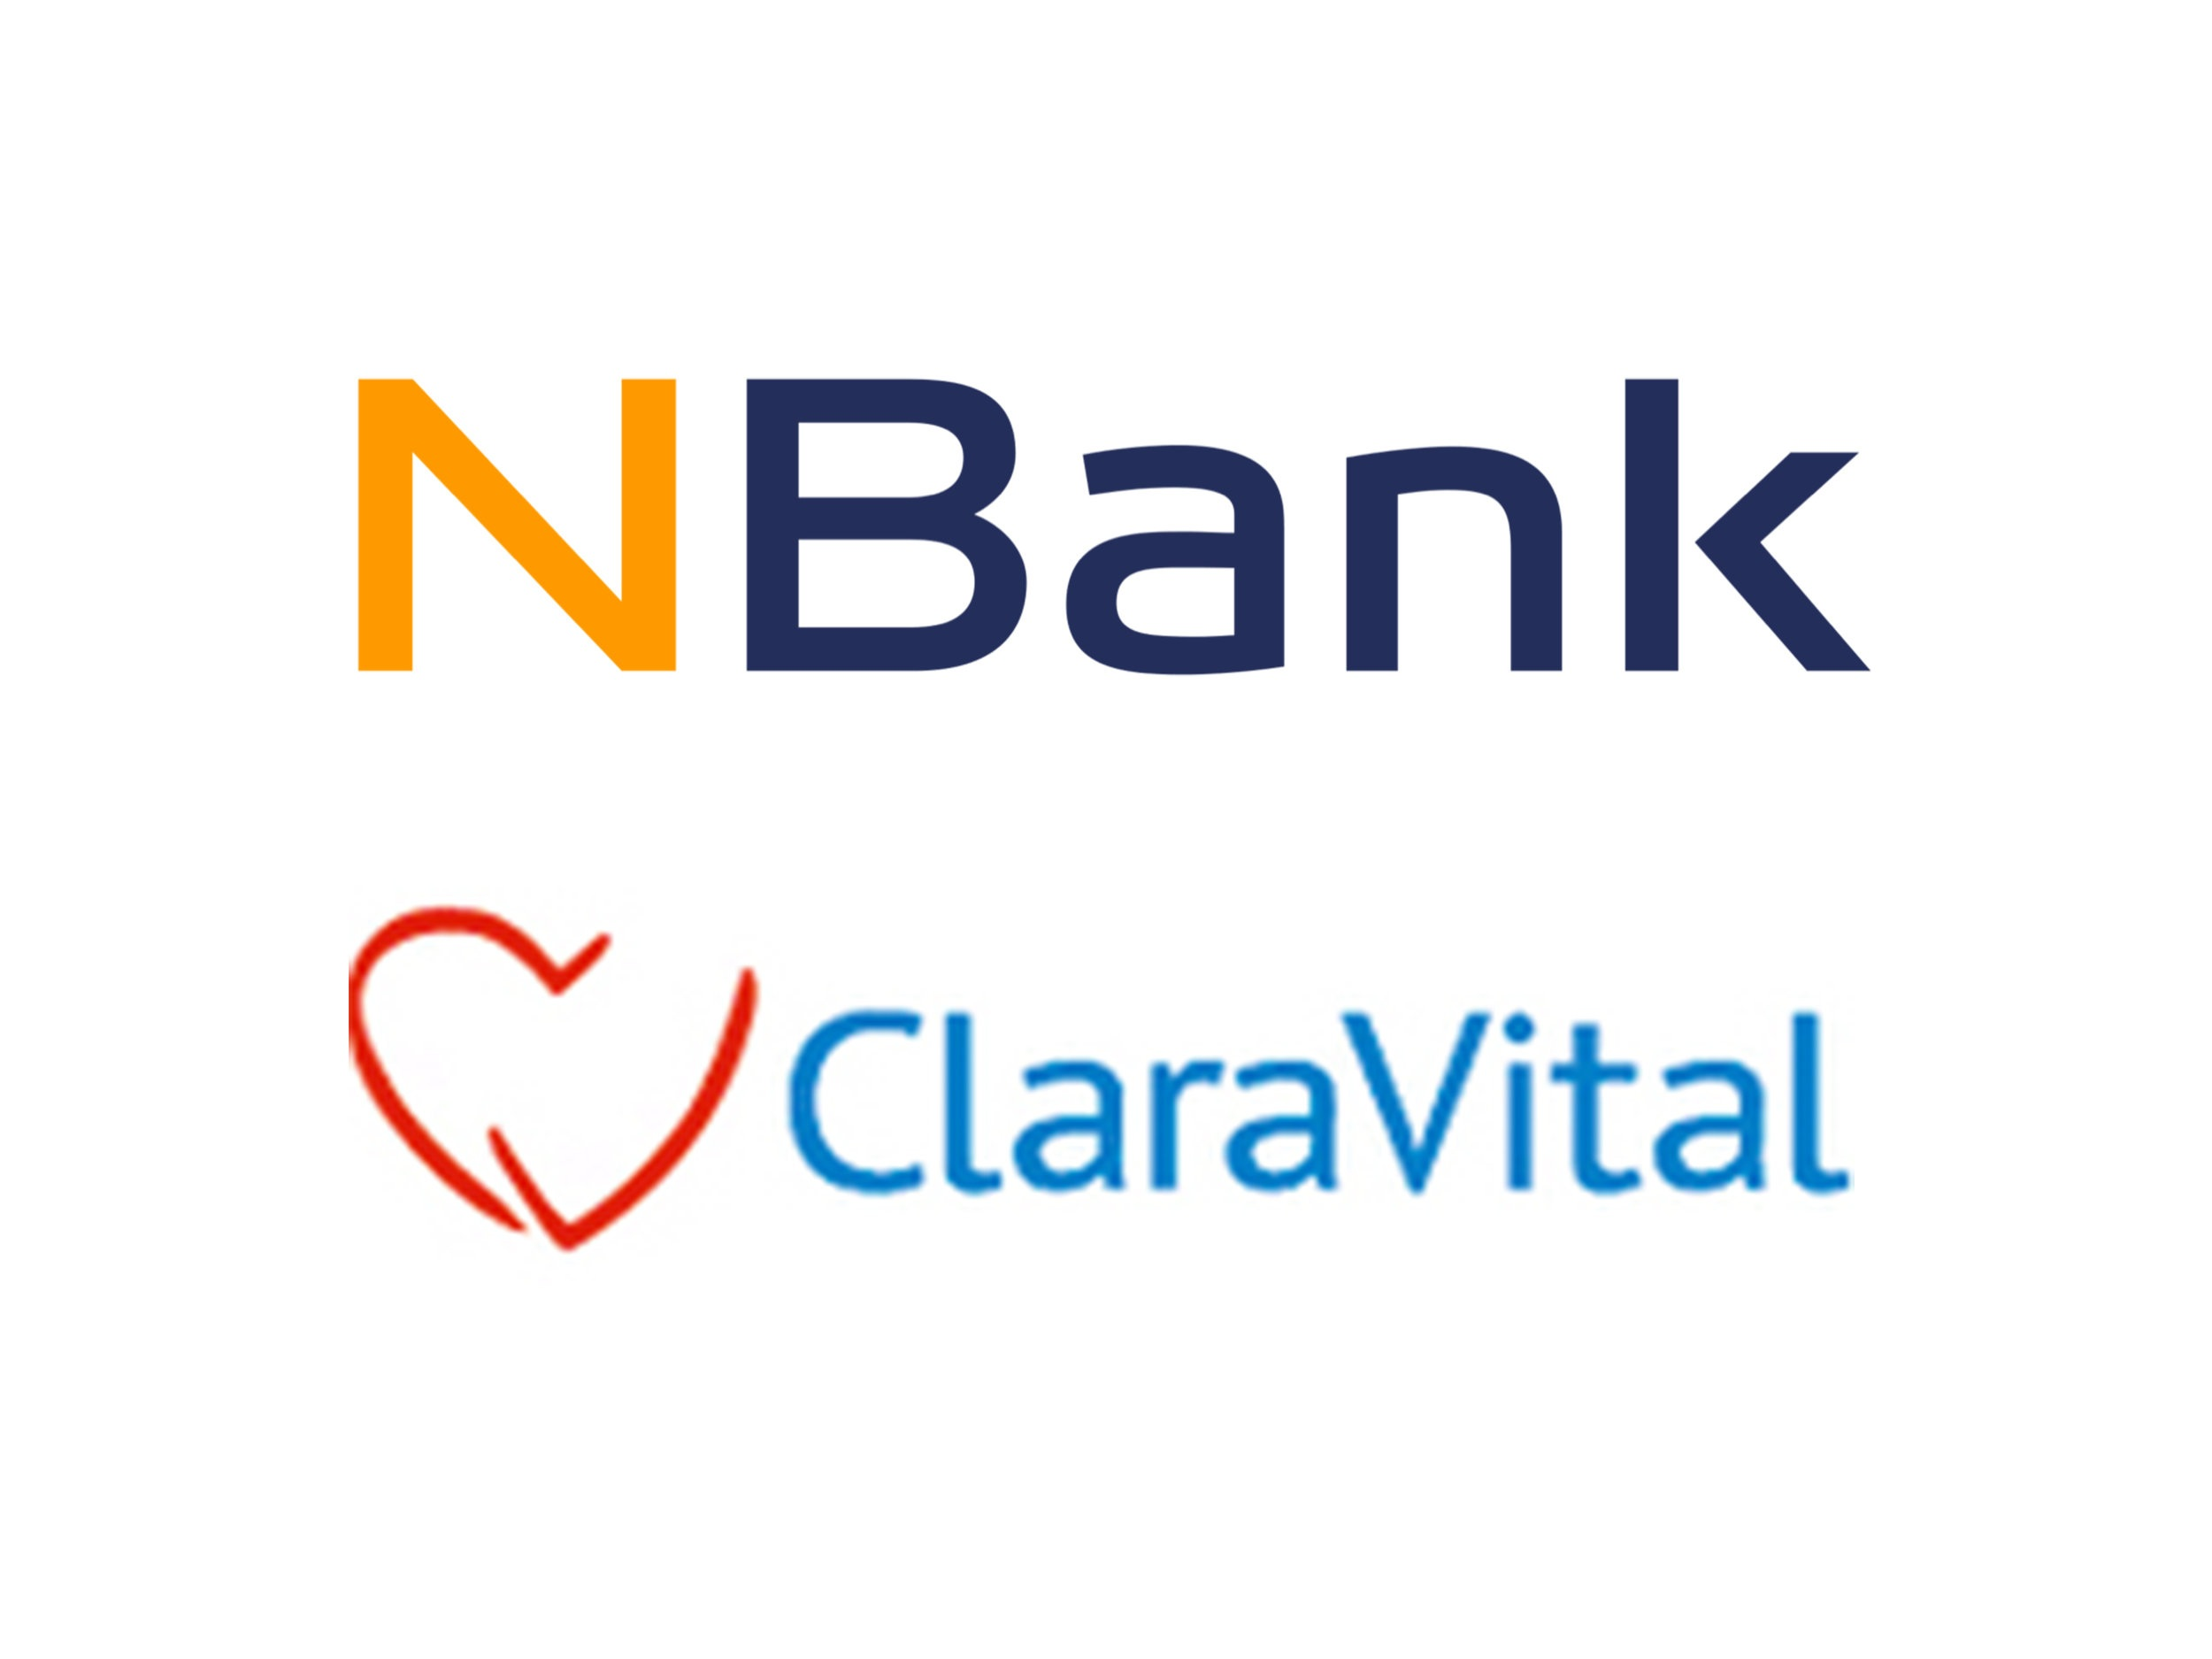 CORPORATE FINANCE SERVICE - New Times X advised the shareholders of ArvoMed, the company behind ClaraVital, in the fundraising process finalized with the investment of NKB, a subsidiary of NBank, togetehr with a Hamburg based family office